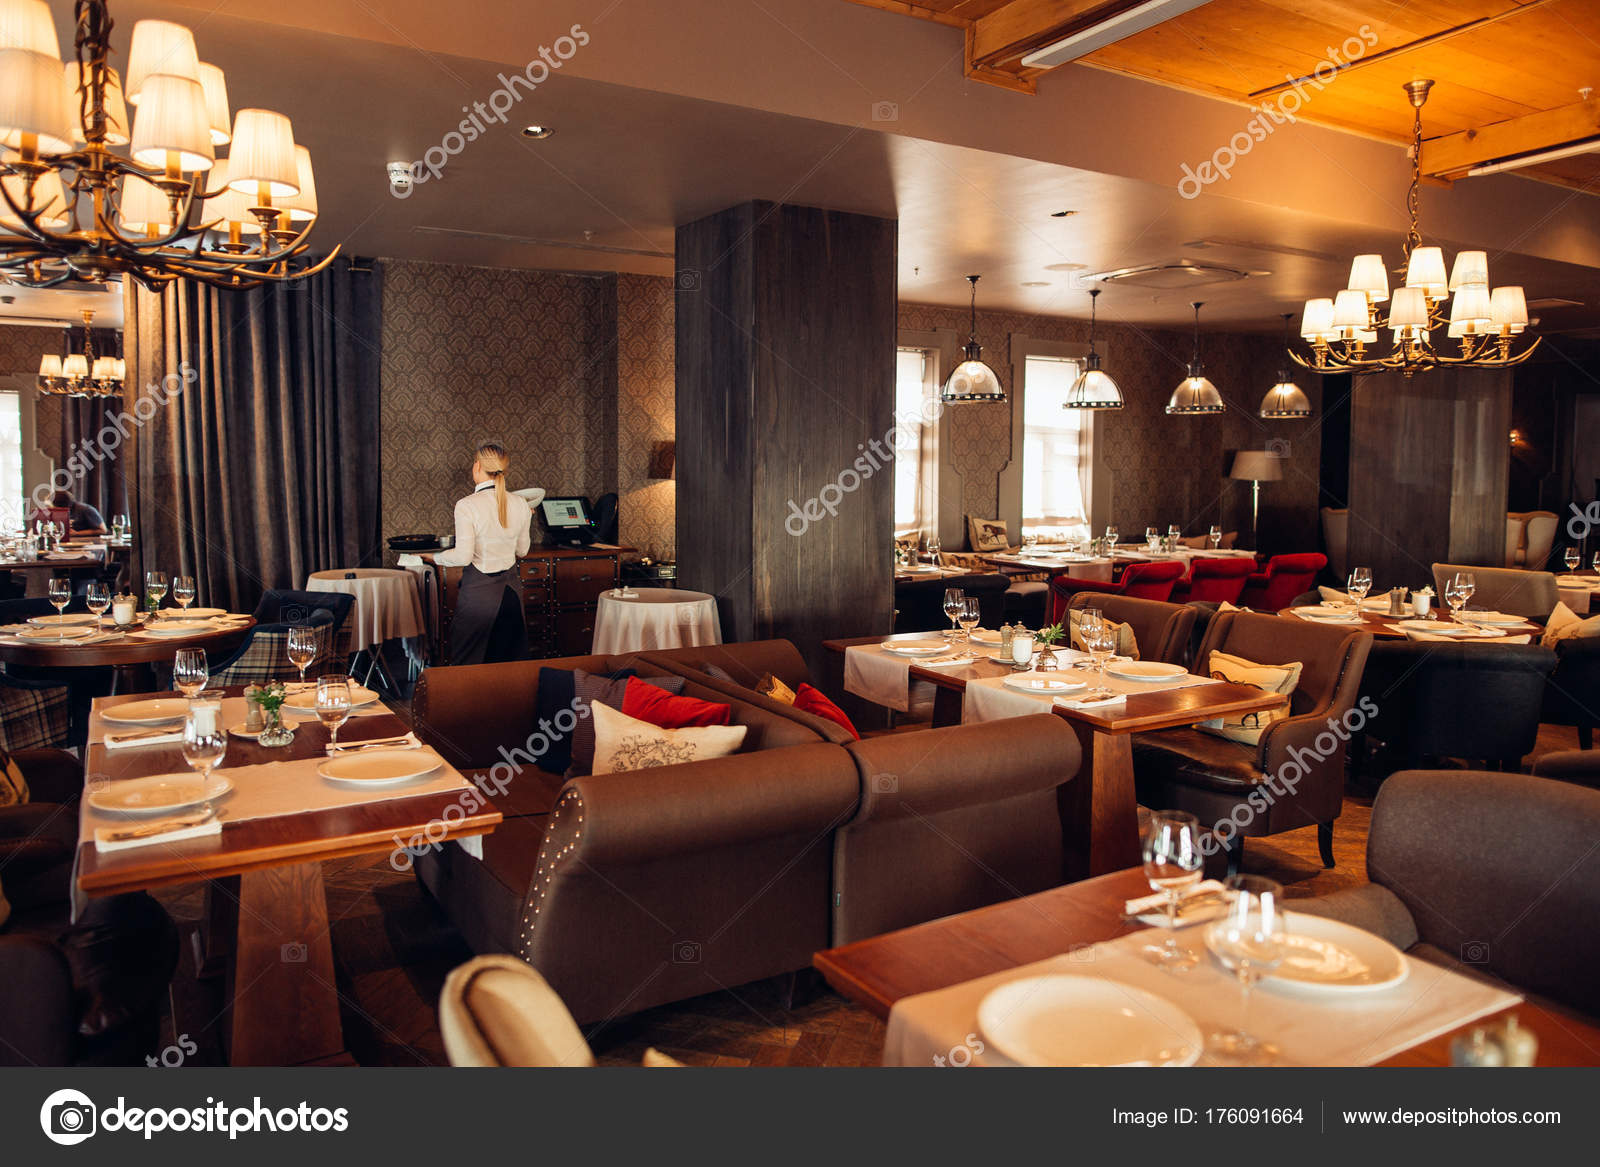 Modern And Simple Cafe Interior With Wooden Classical Furniture Stock Photo C Ufabizphoto 176091664